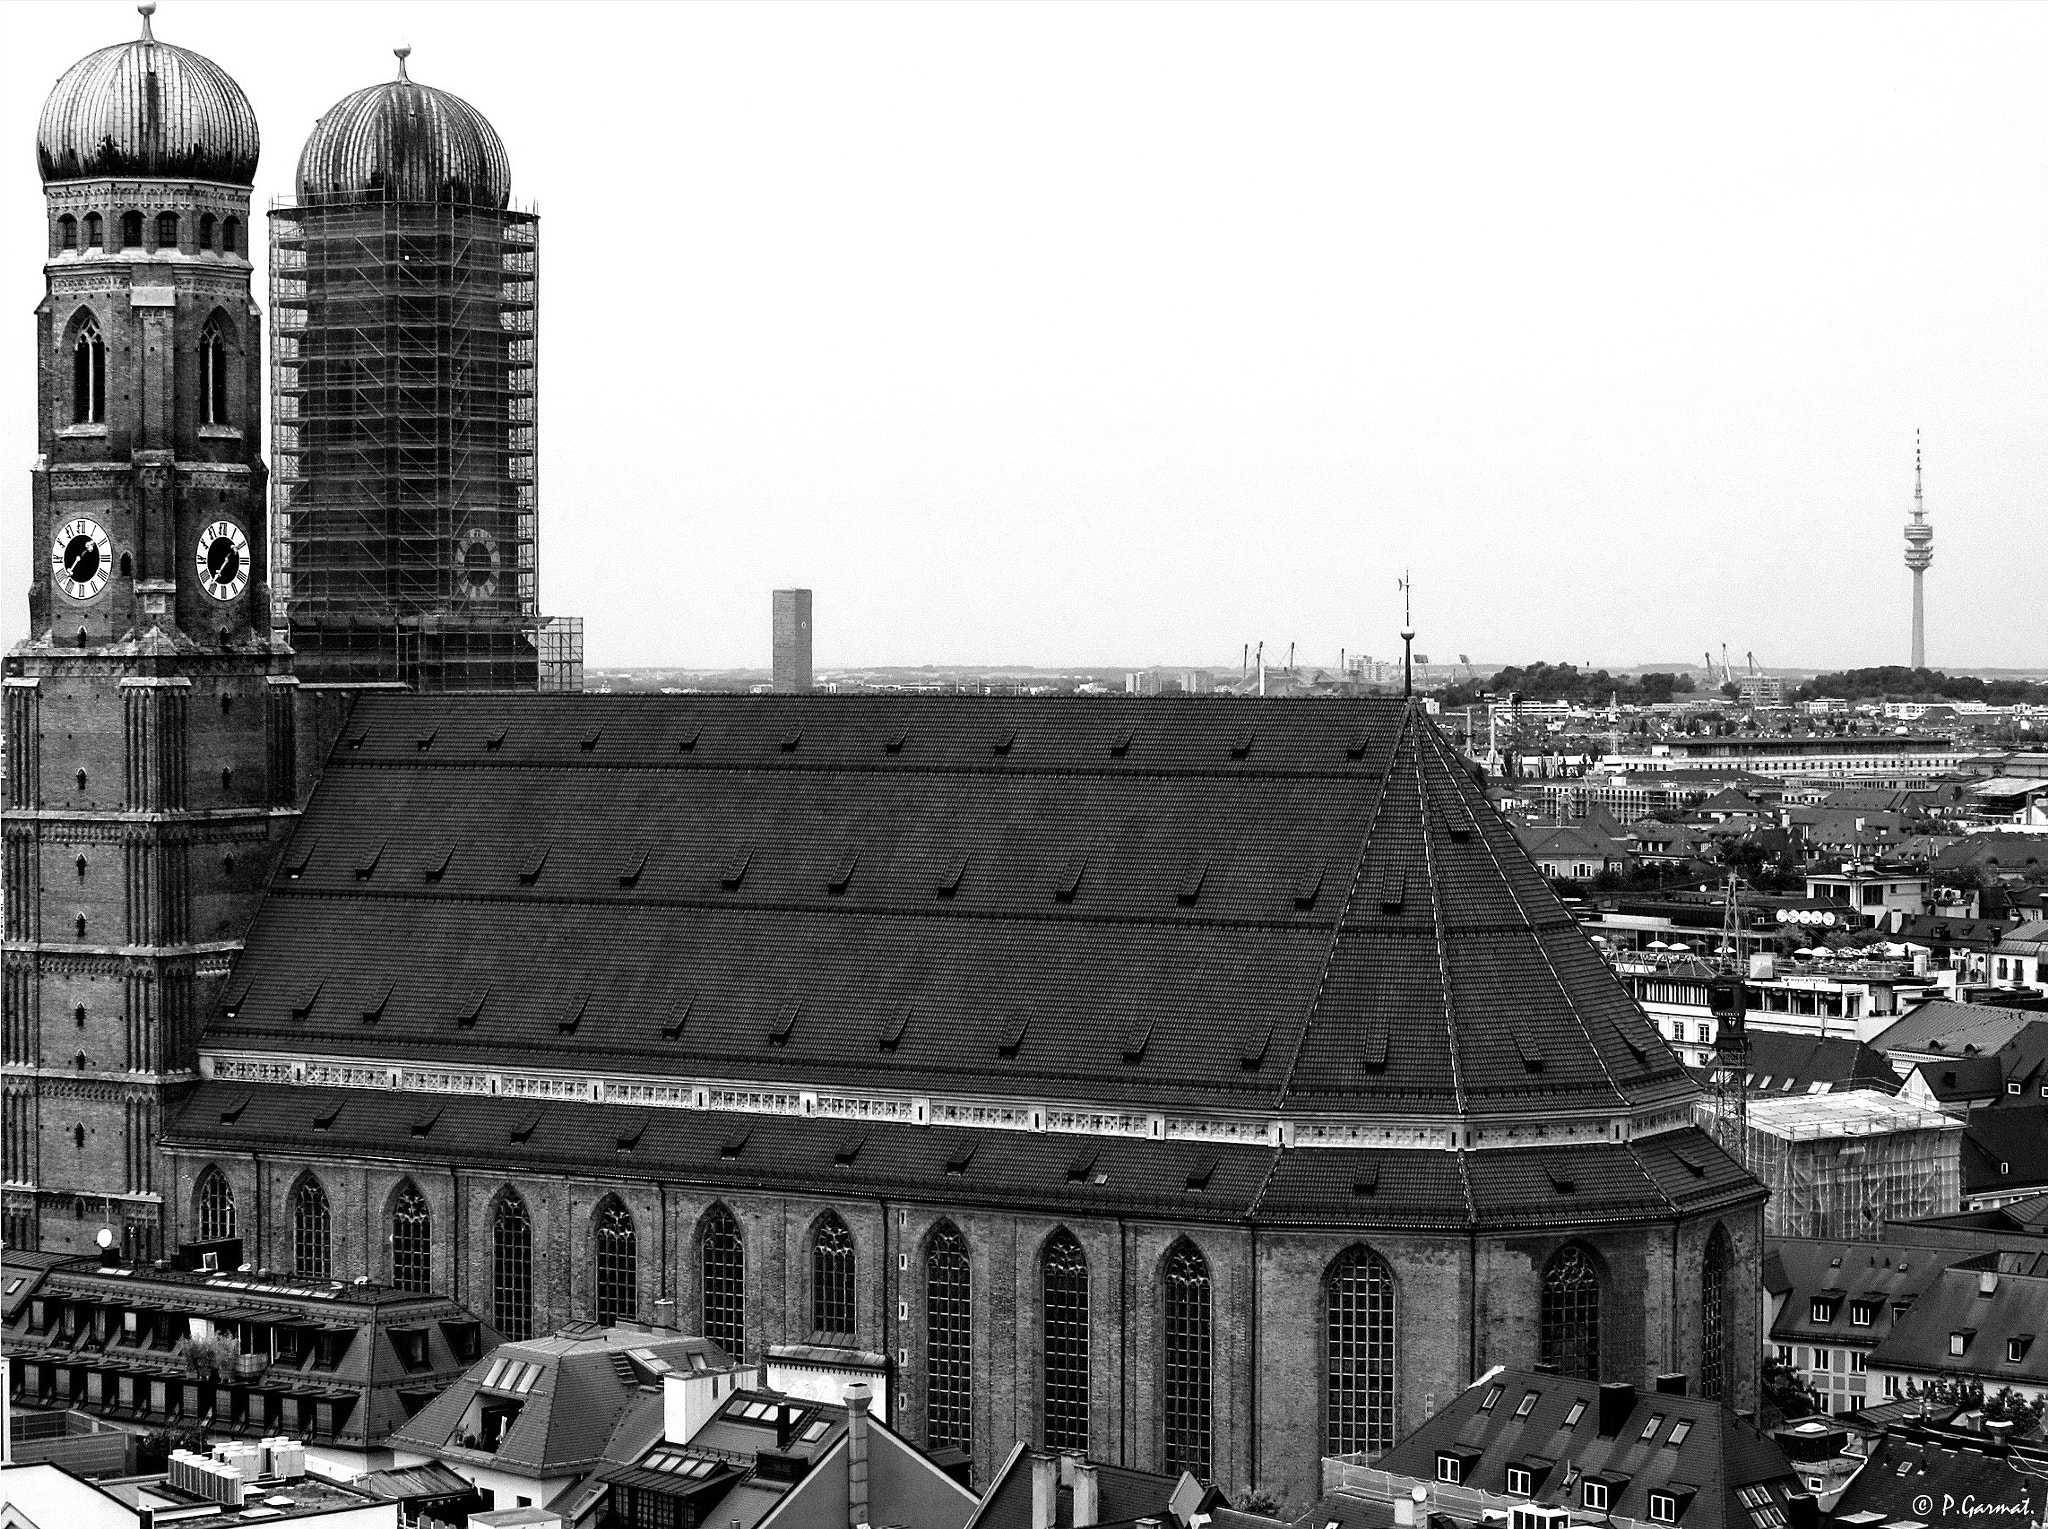 Photograph München Frauenkirche by Garmatis Pantelis on 500px